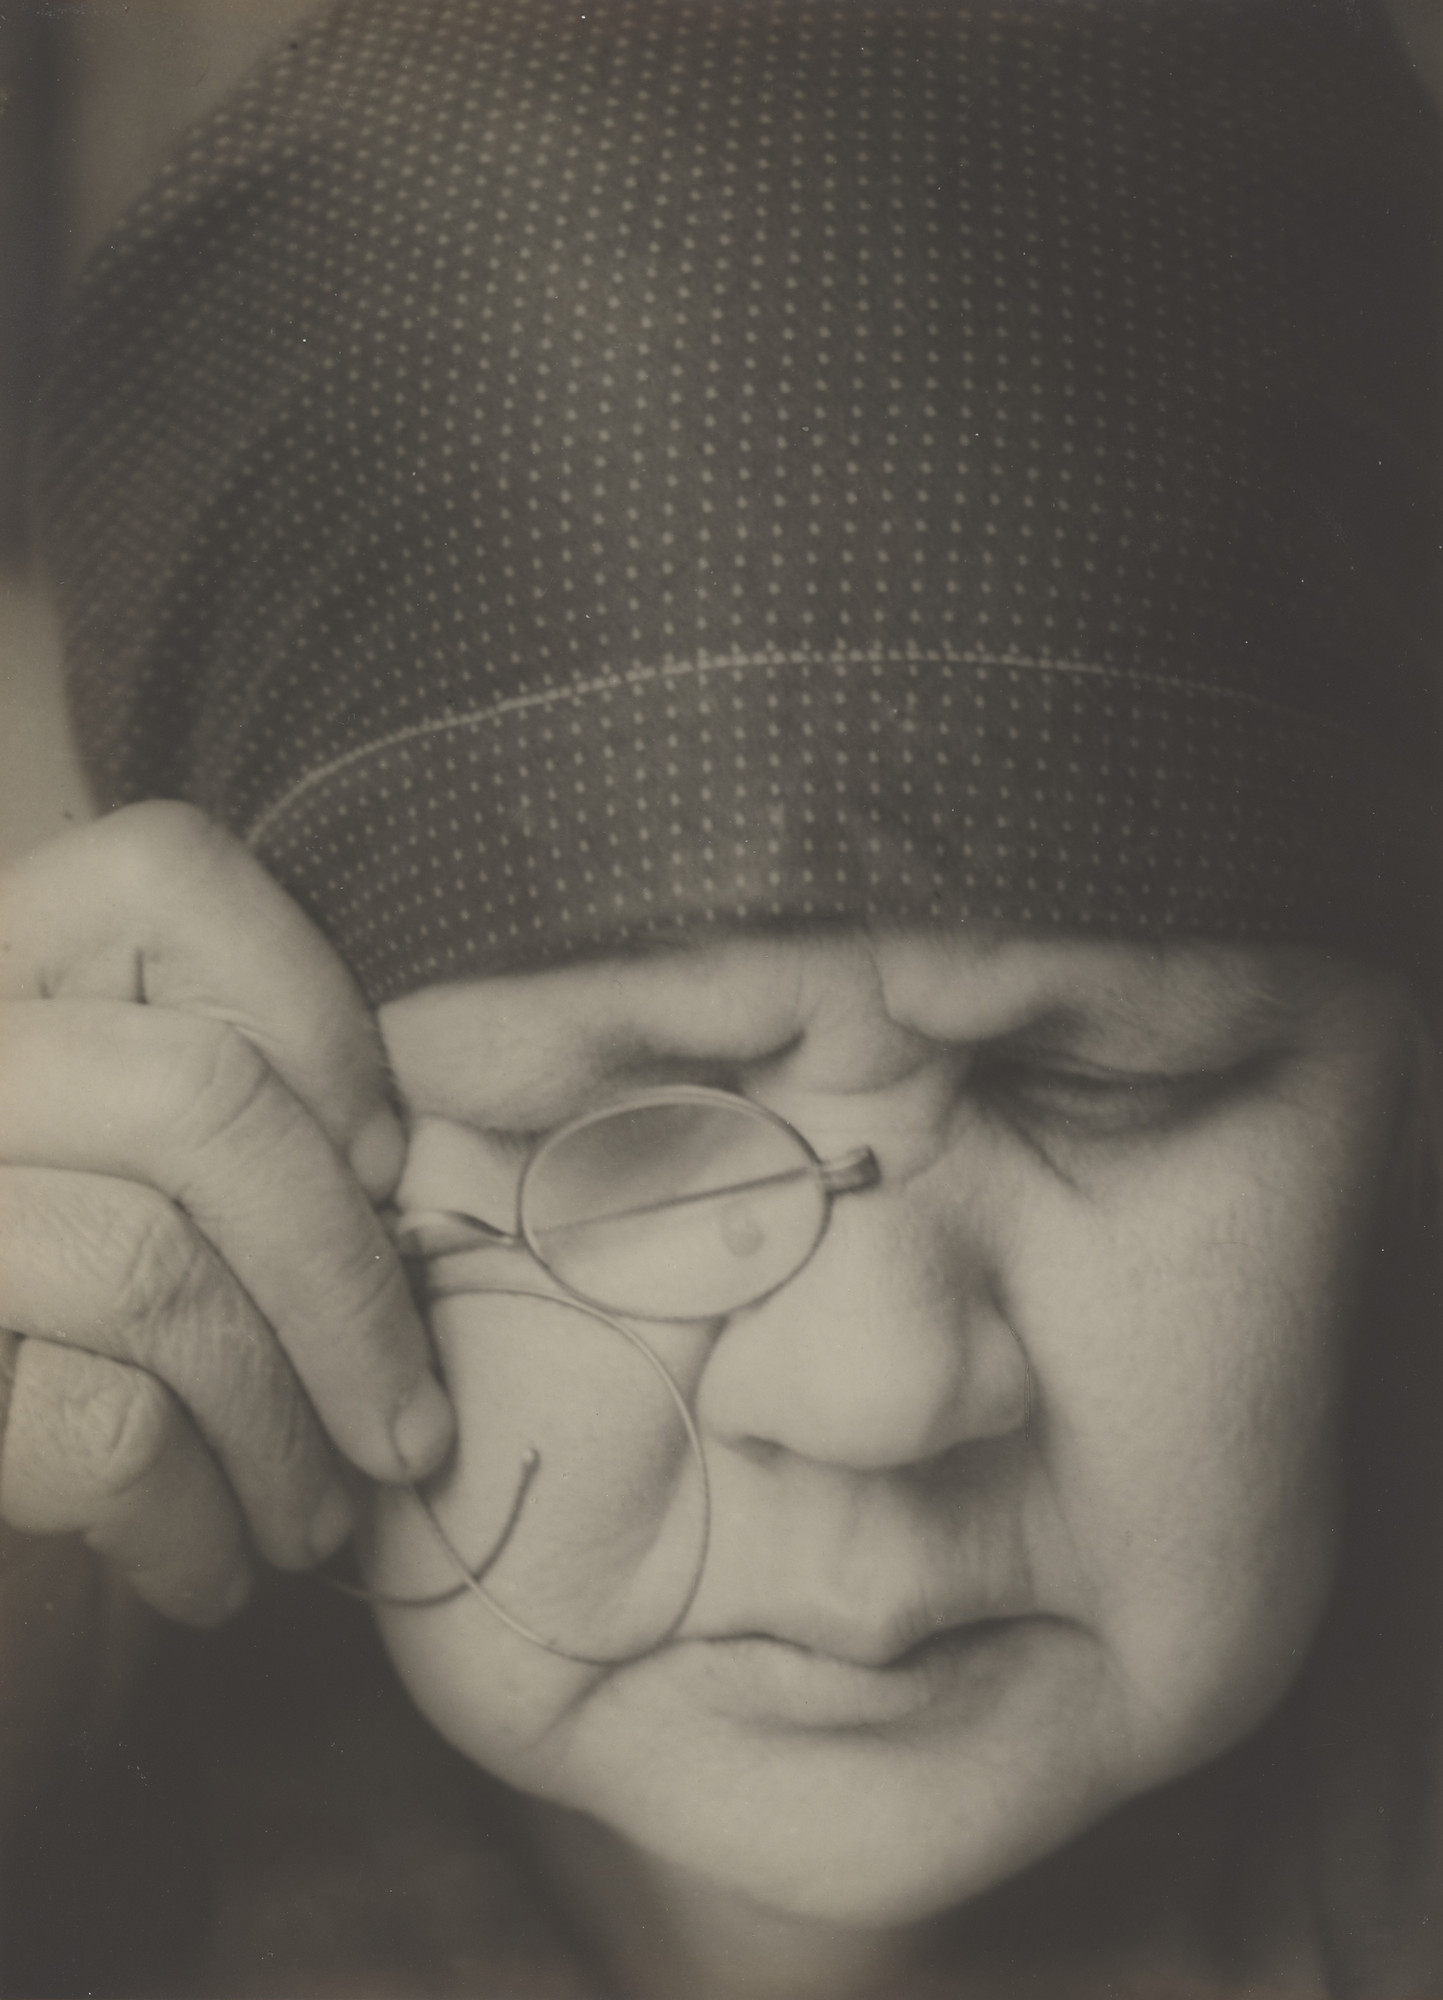 Aleksandr Rodchenko. Mother. 1924